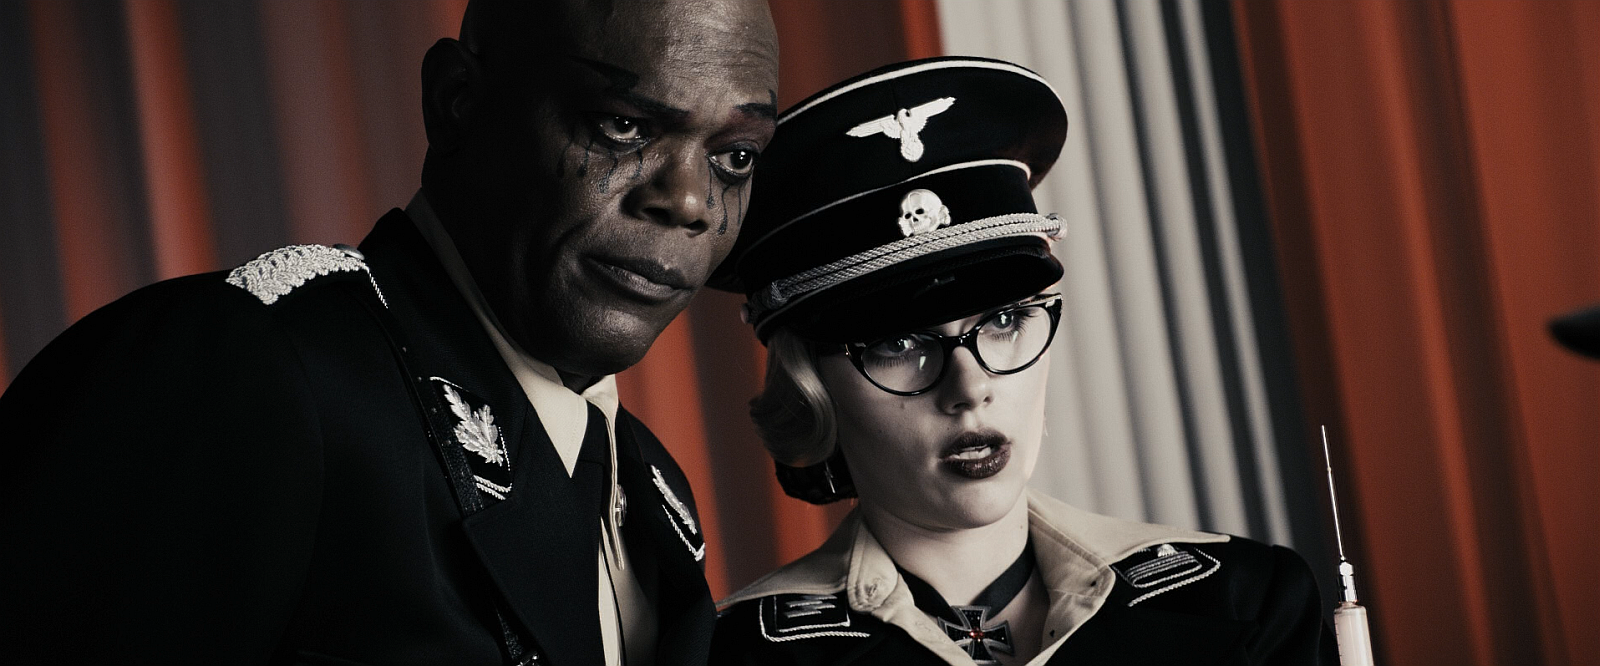 The Octopus and Silken Floss - Samuel L. Jackson and Scarlett Johansson as Nazis in The Spirit (2008)